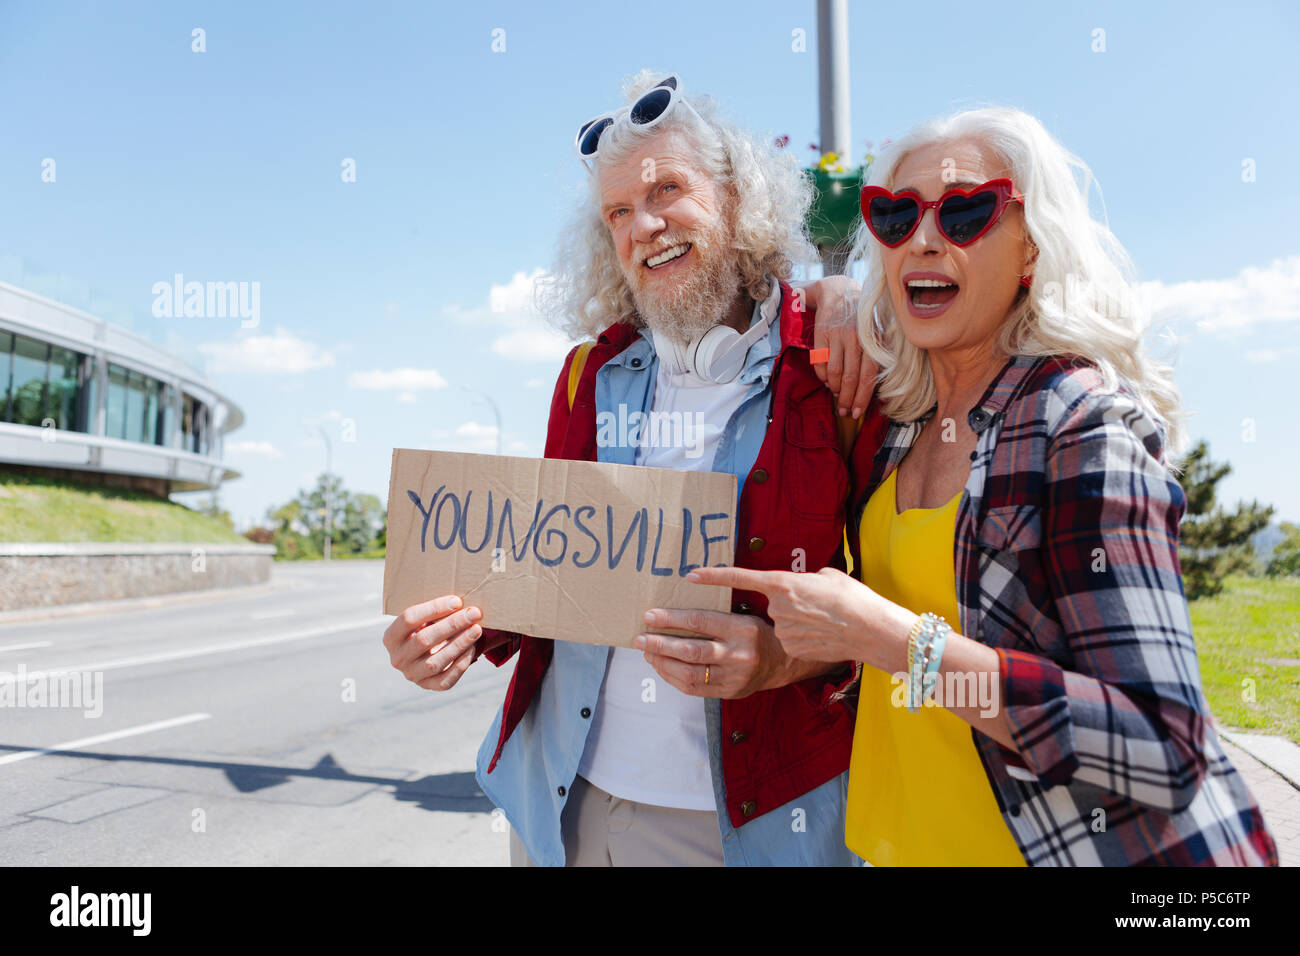 Joyful delighted couple going to youngsville - Stock Image